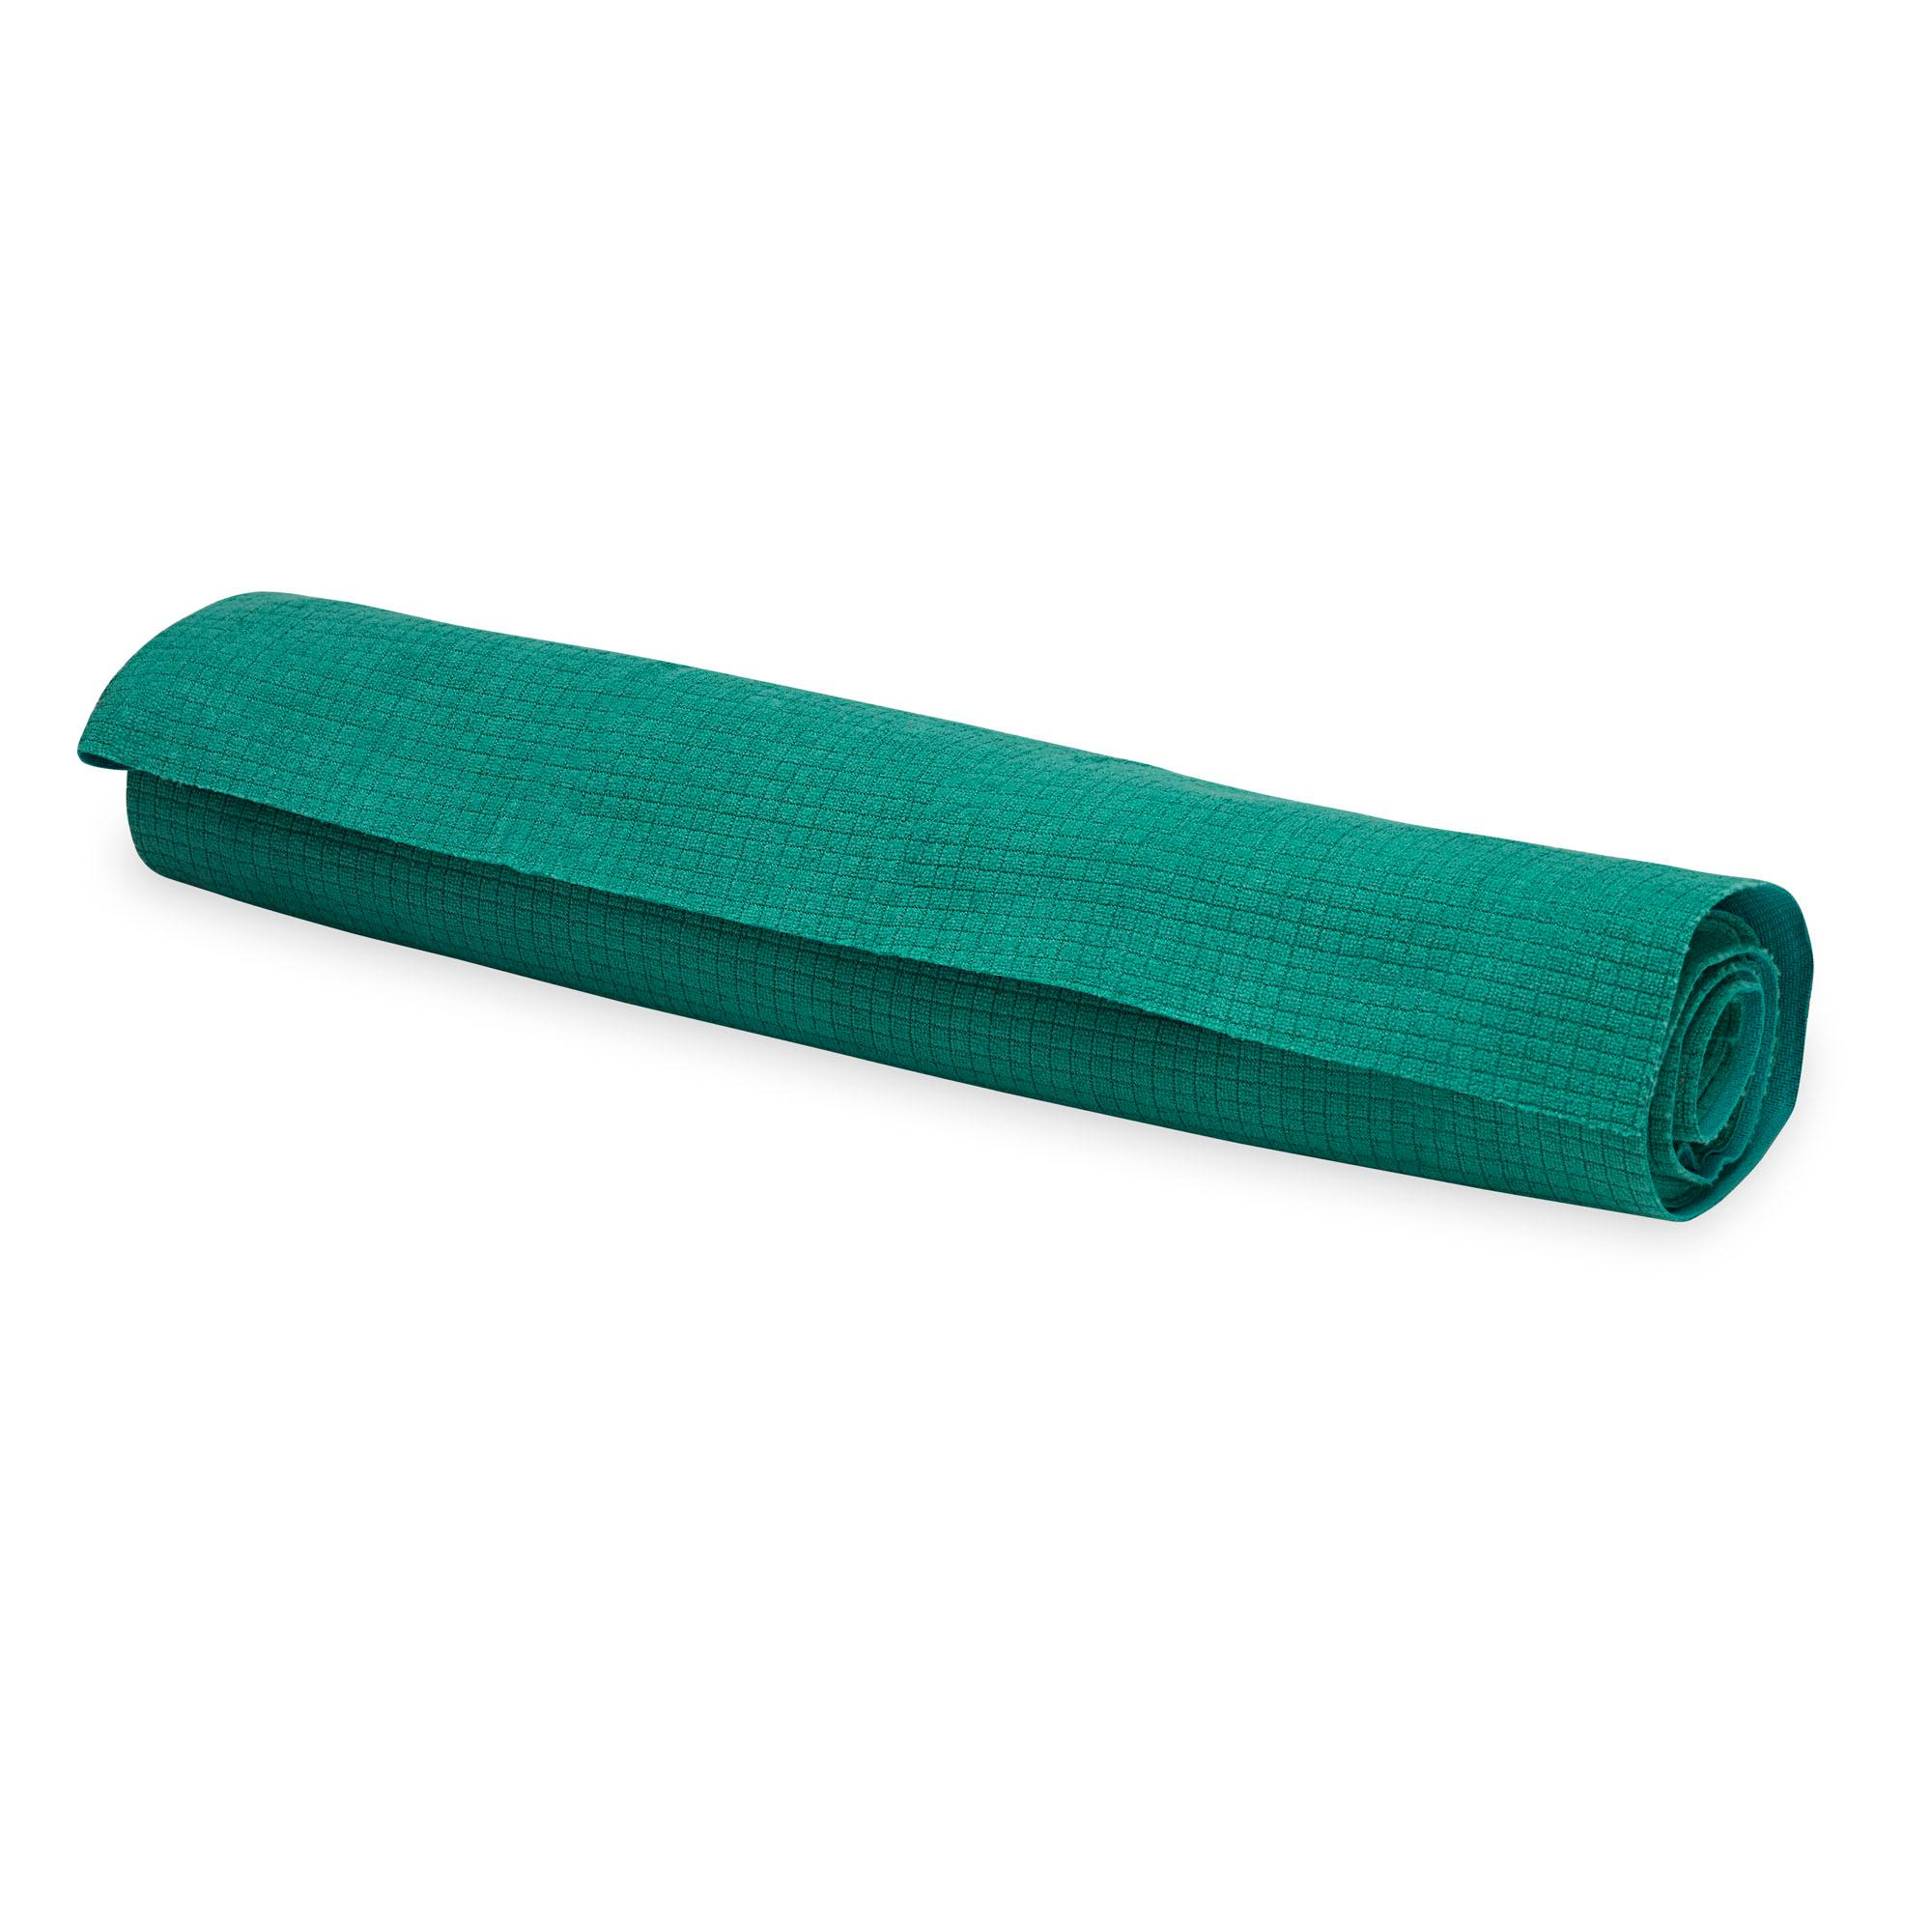 Amazon.com : Gaiam Travel Yoga Mat, Blue : Yoga Towels